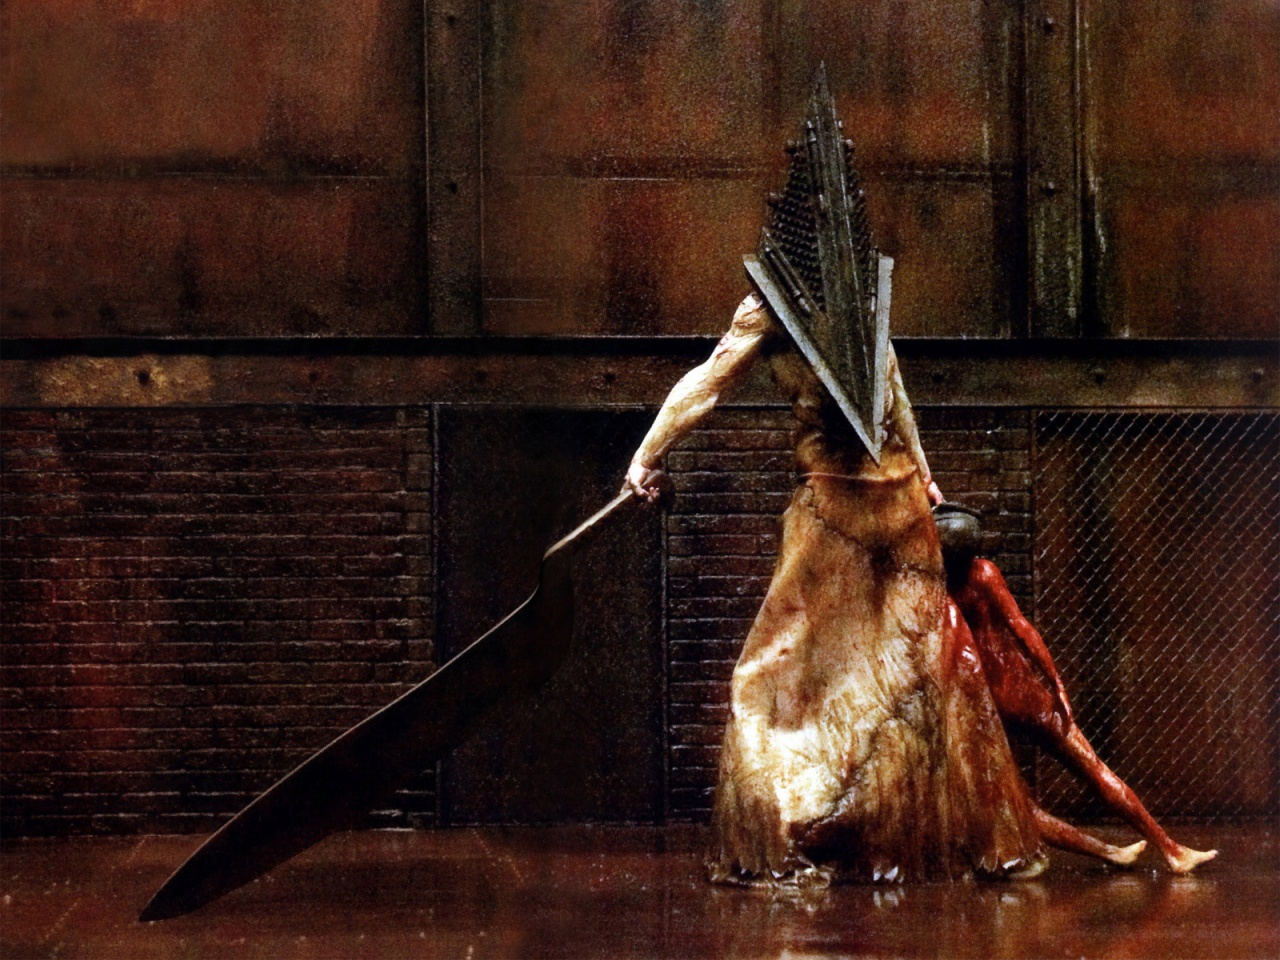 Silent Hill - Pyramid Head